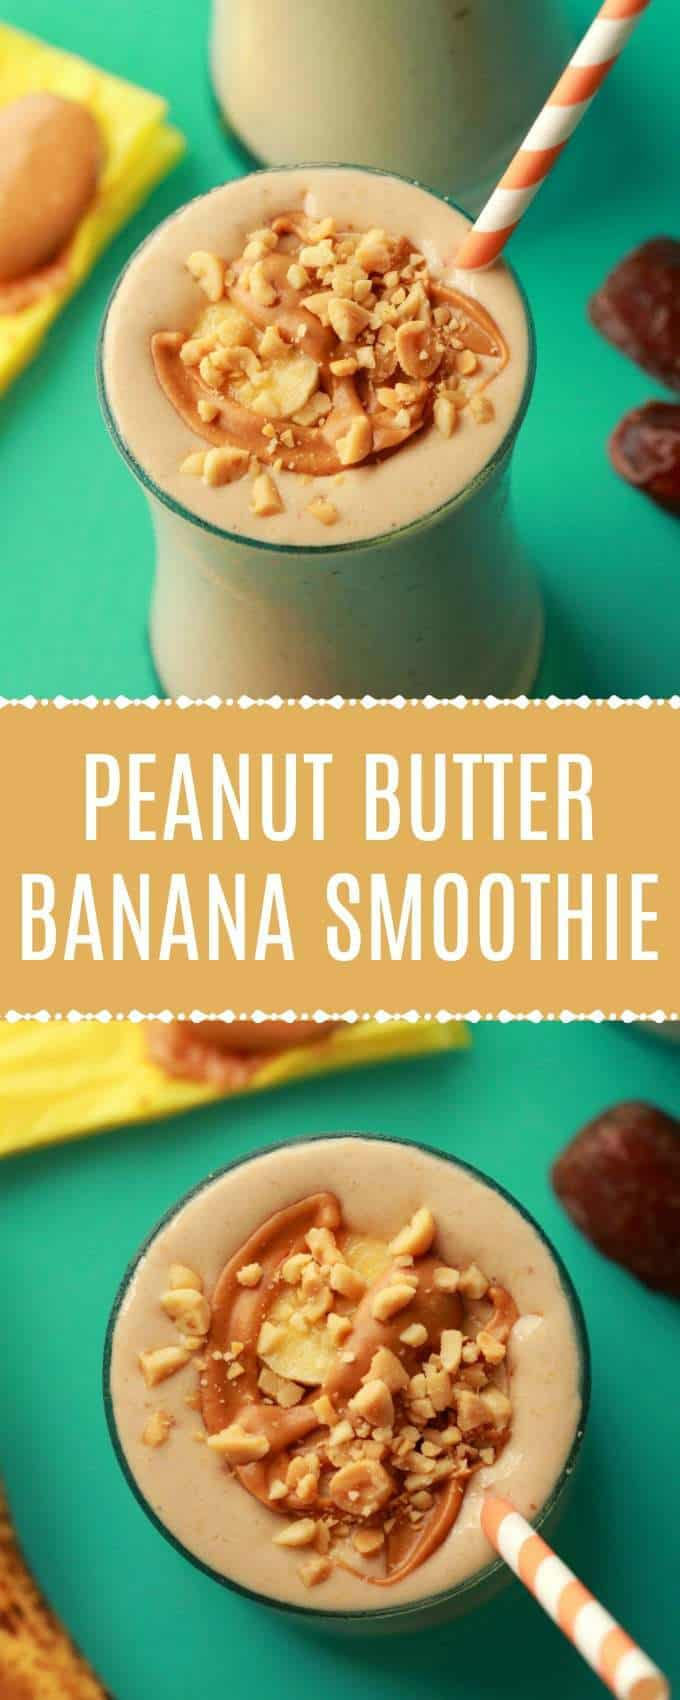 Creamy and delicious peanut butter banana smoothie. This easy 4-ingredient recipe is high in protein, ready in 5 minutes and perfect for breakfast! | lovingitvegan.com